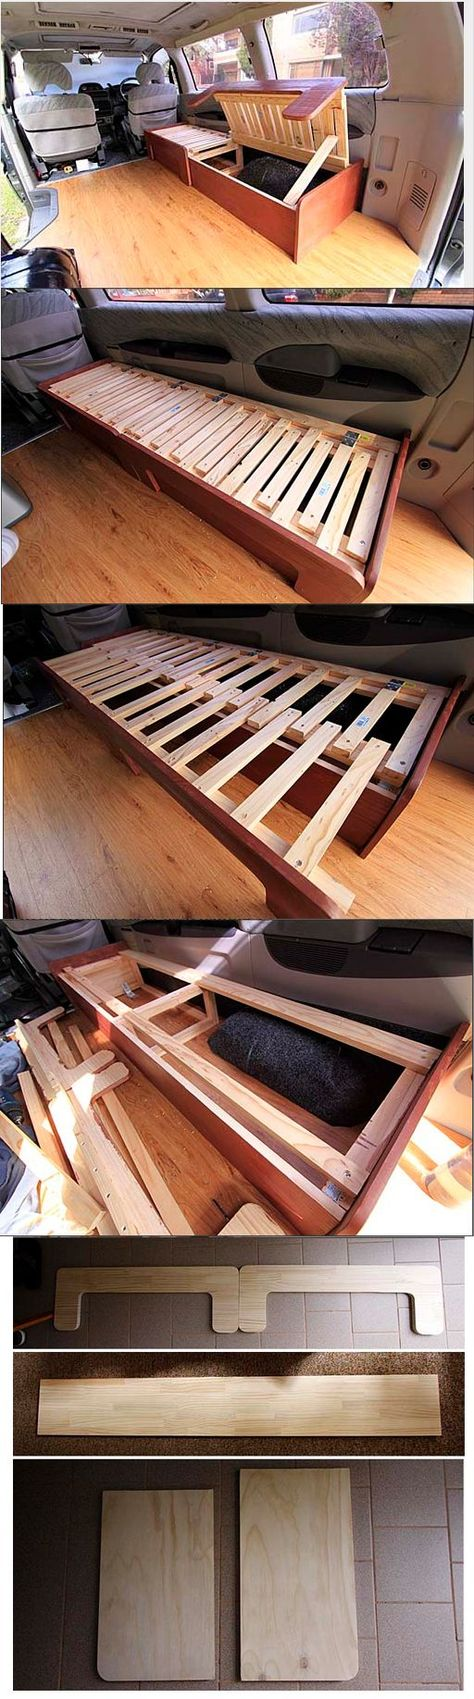 New idea for the benches in the tinker wagon! DIY sofabed / http://www.vagabonderz.com/building-the-sofabed/